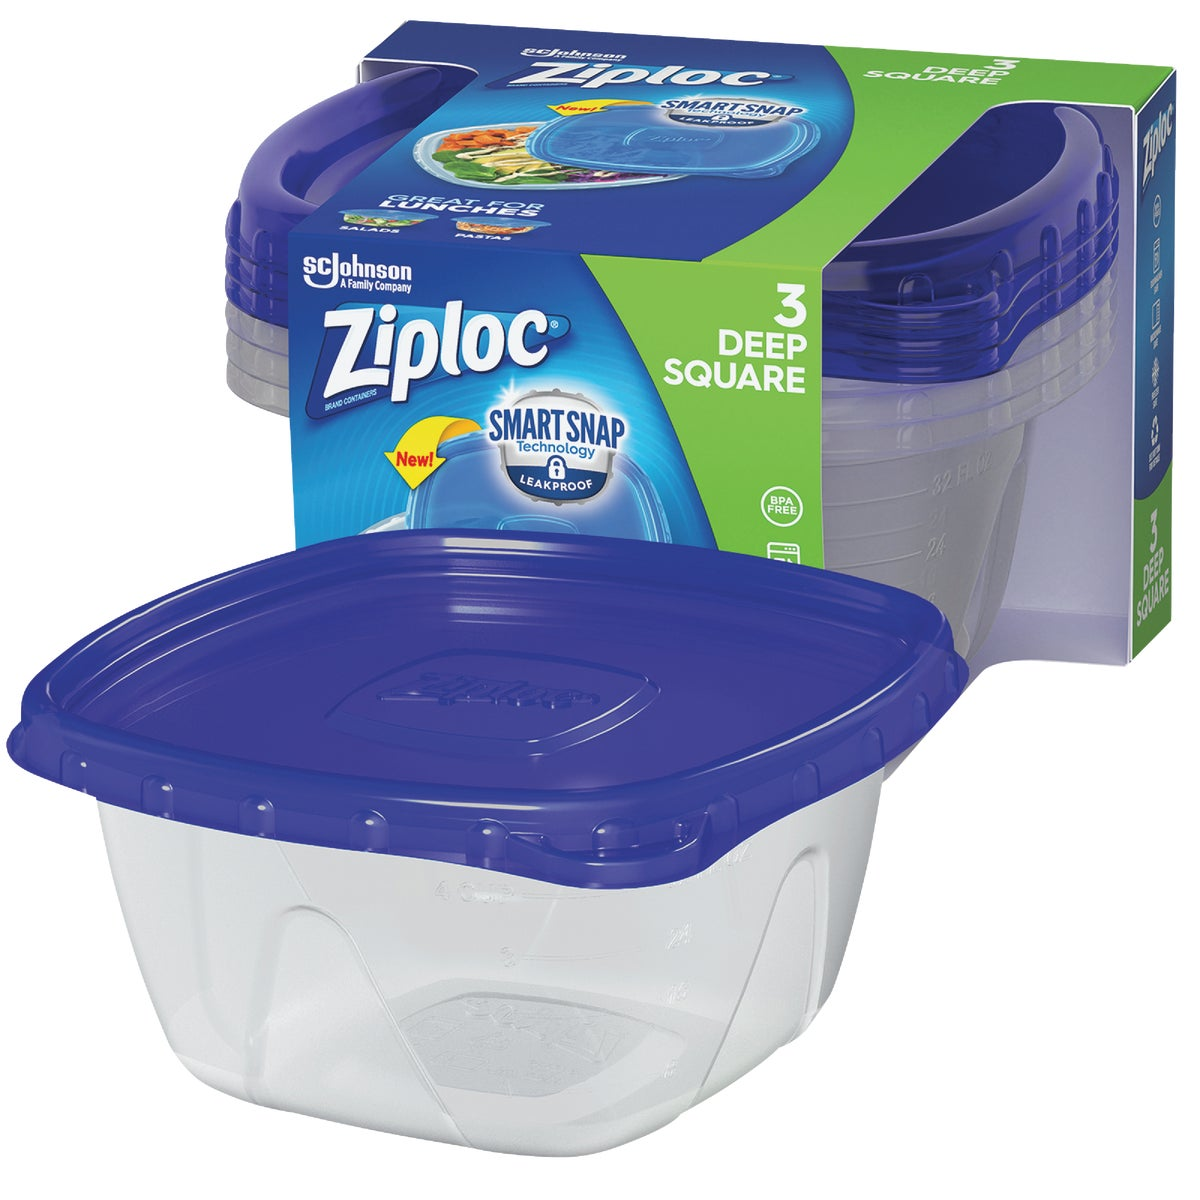 4 PACK FREEZER CONTAINER - 10880 by Sc Johnson